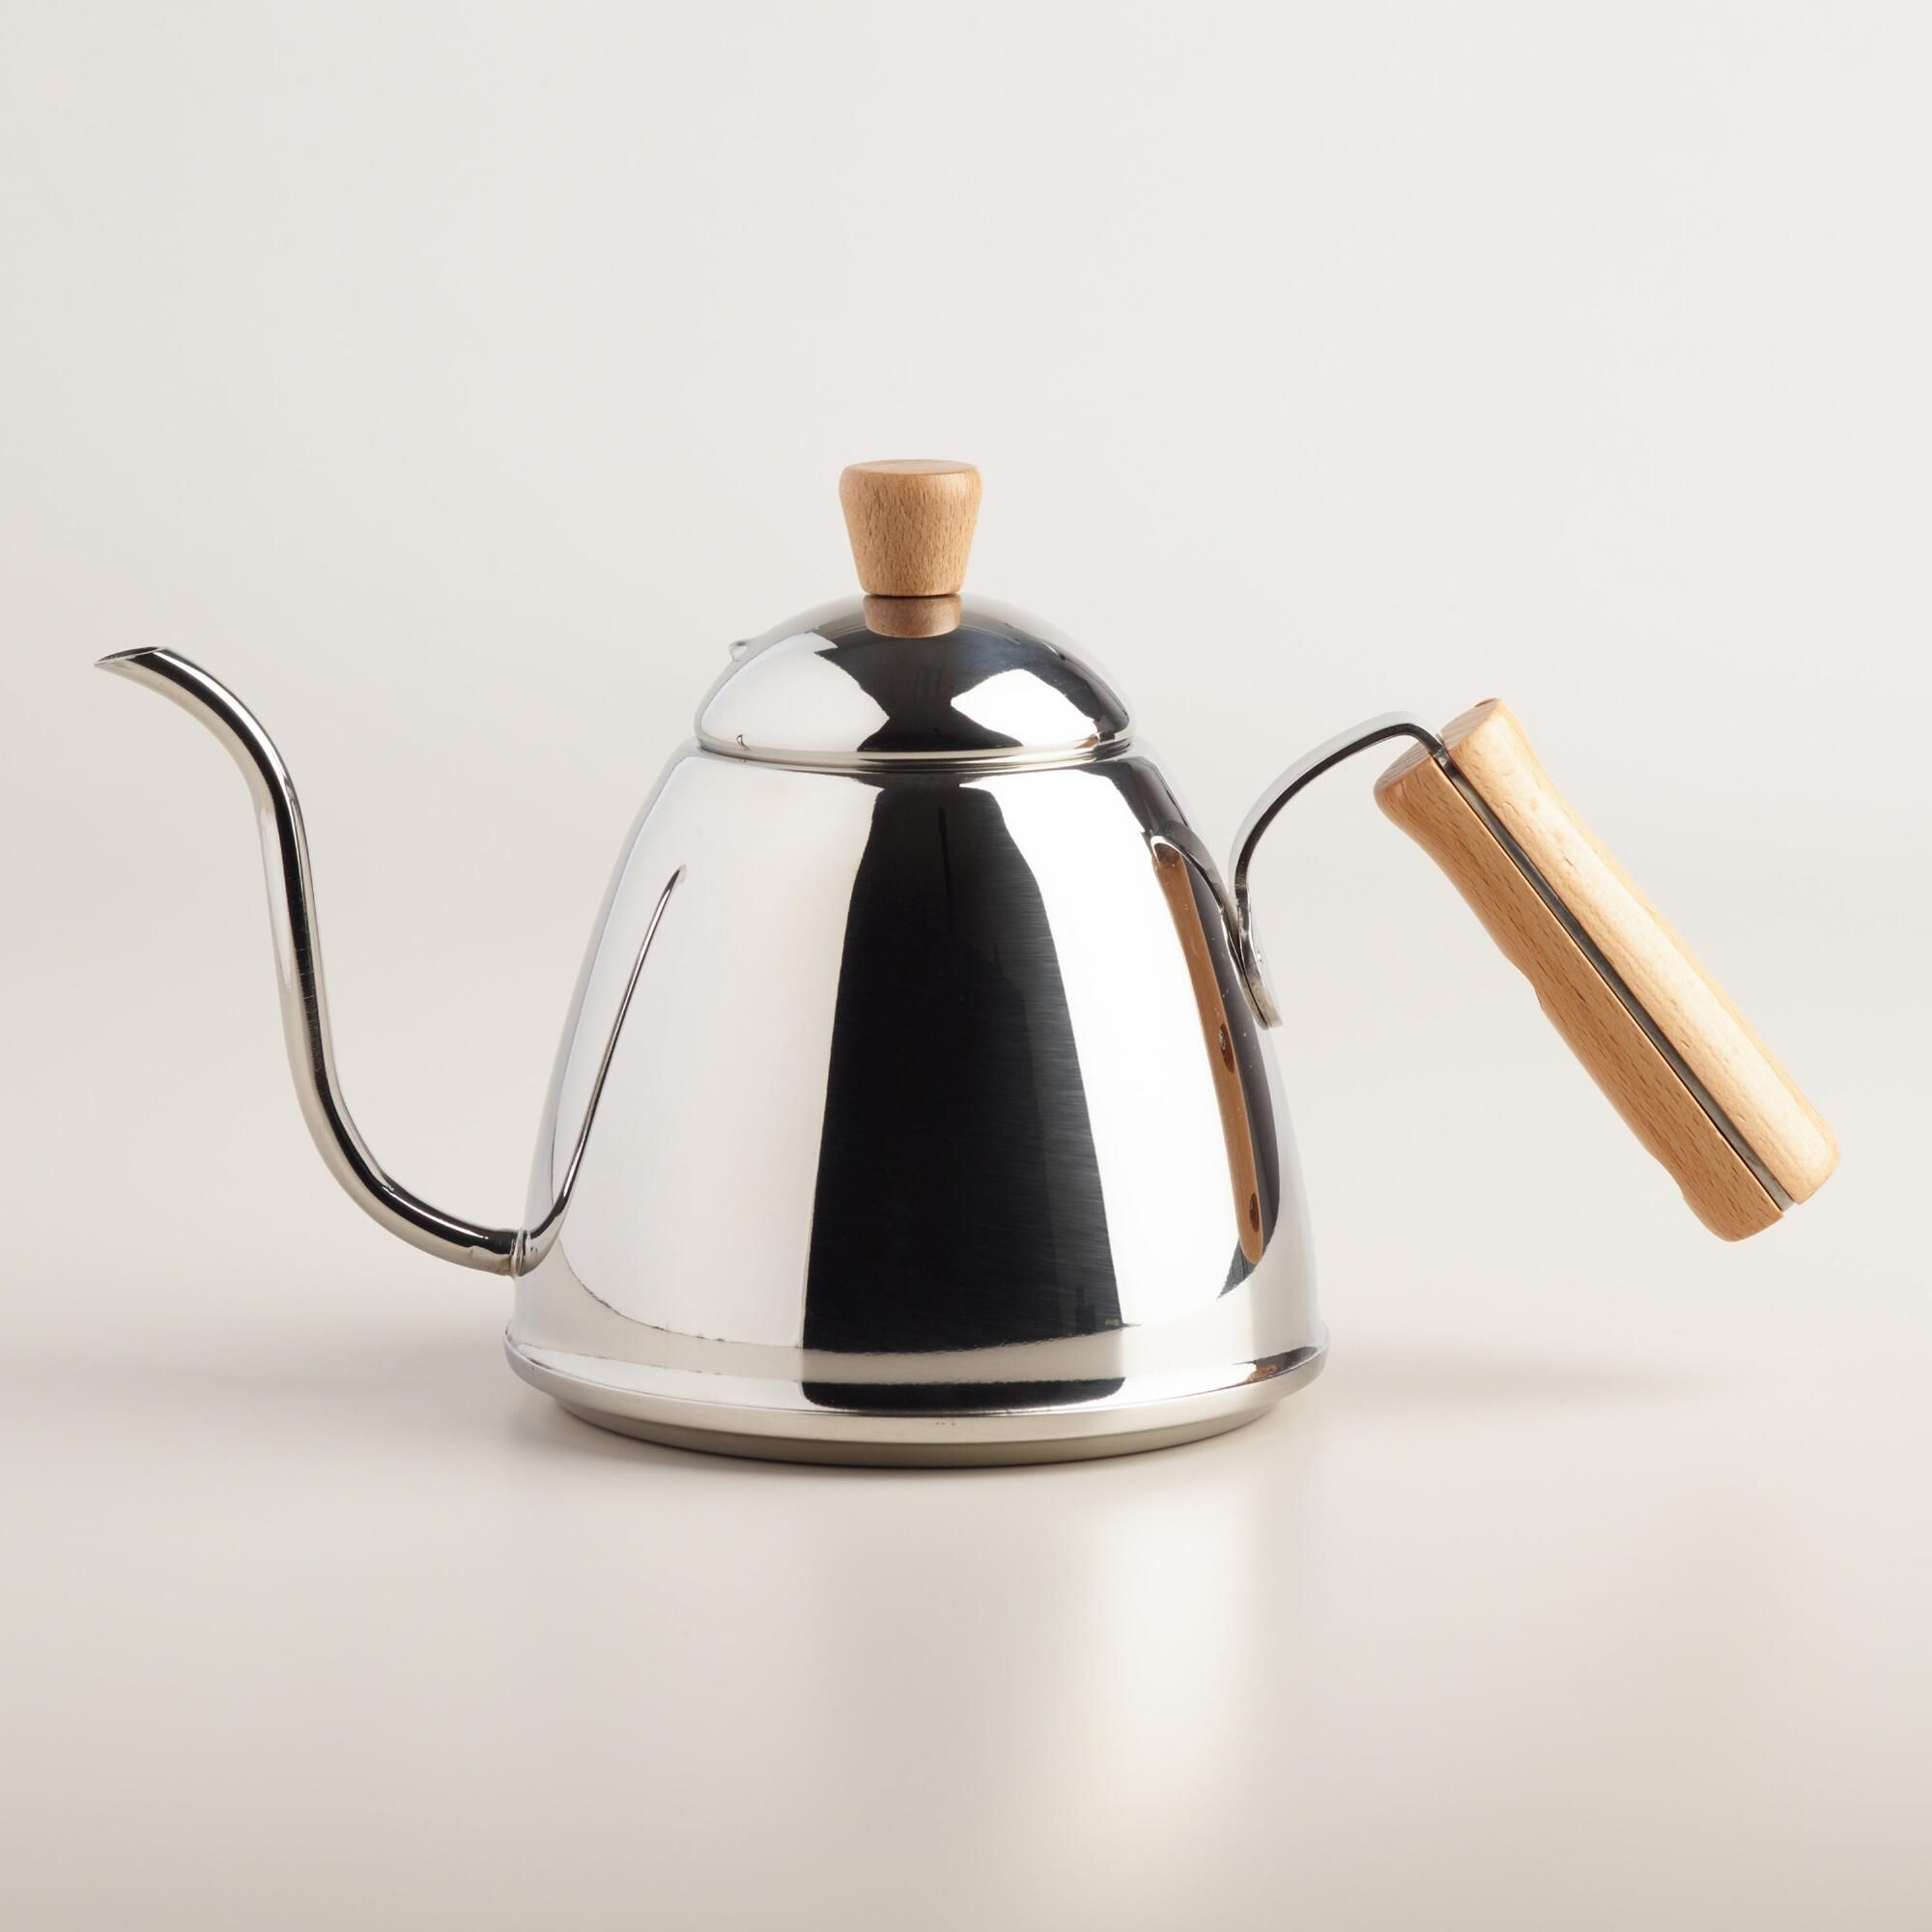 12+ What is a pour over coffee kettle ideas in 2021